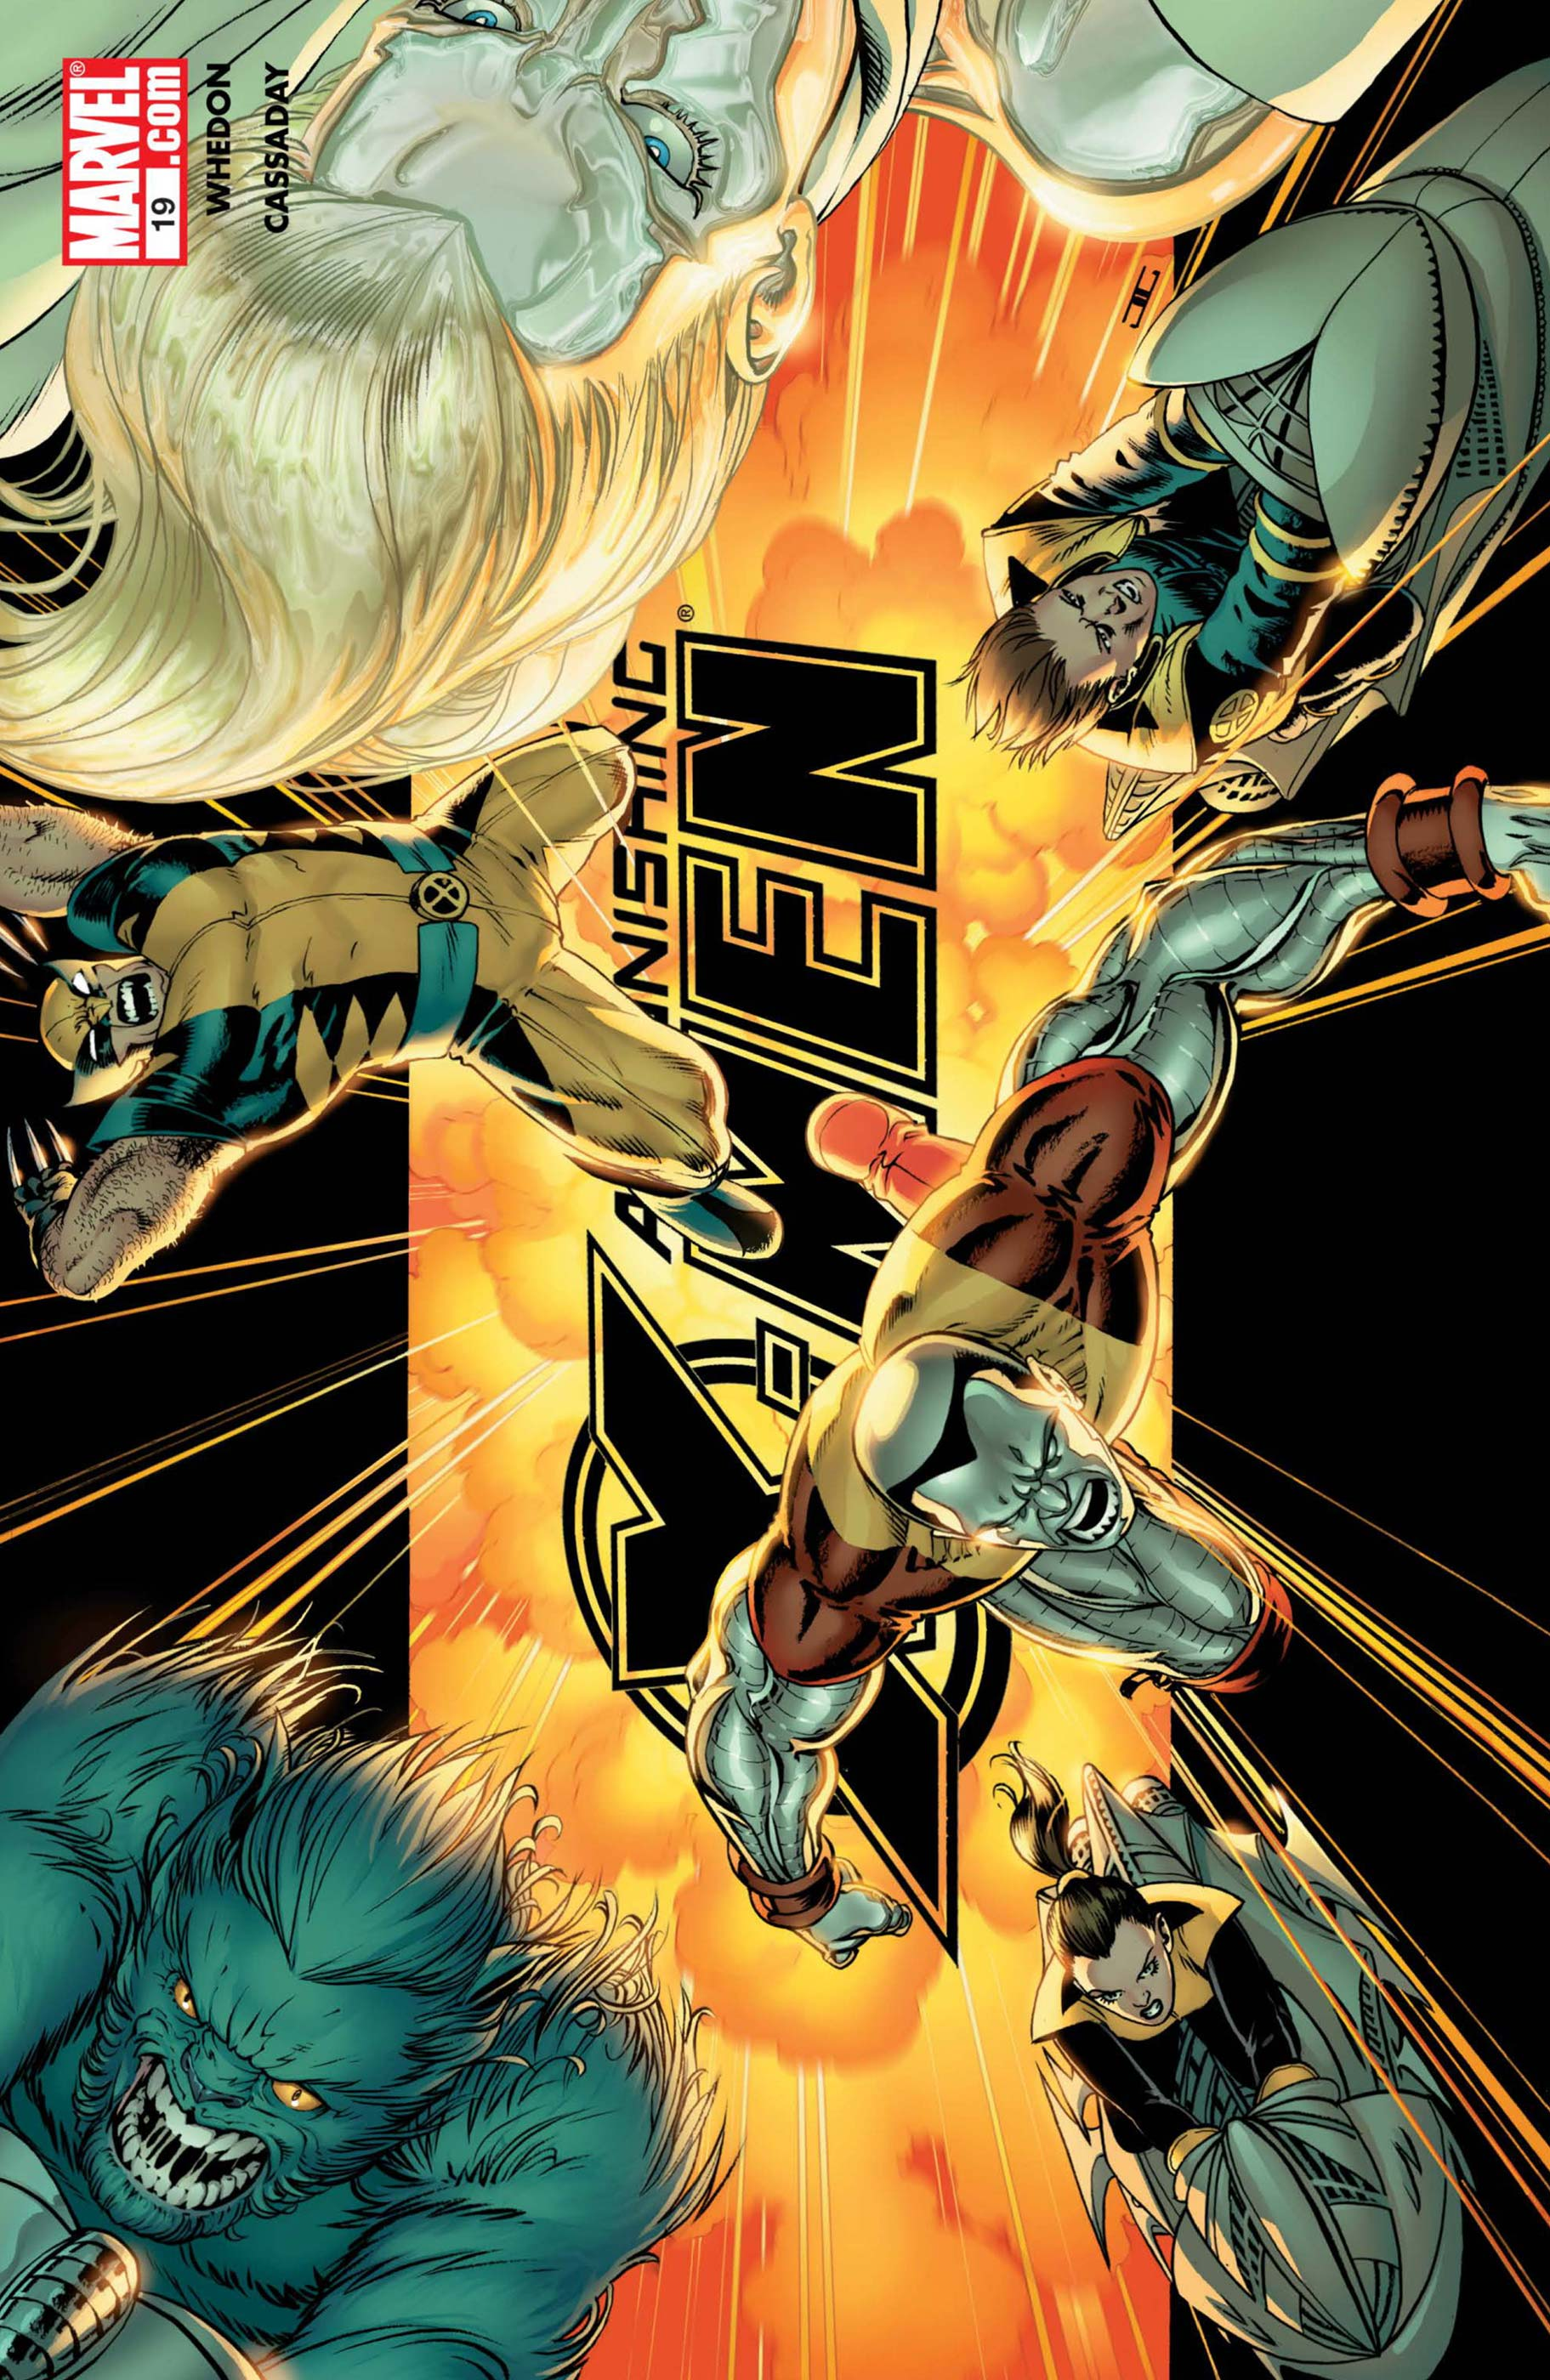 Astonishing X-Men (2004) #19